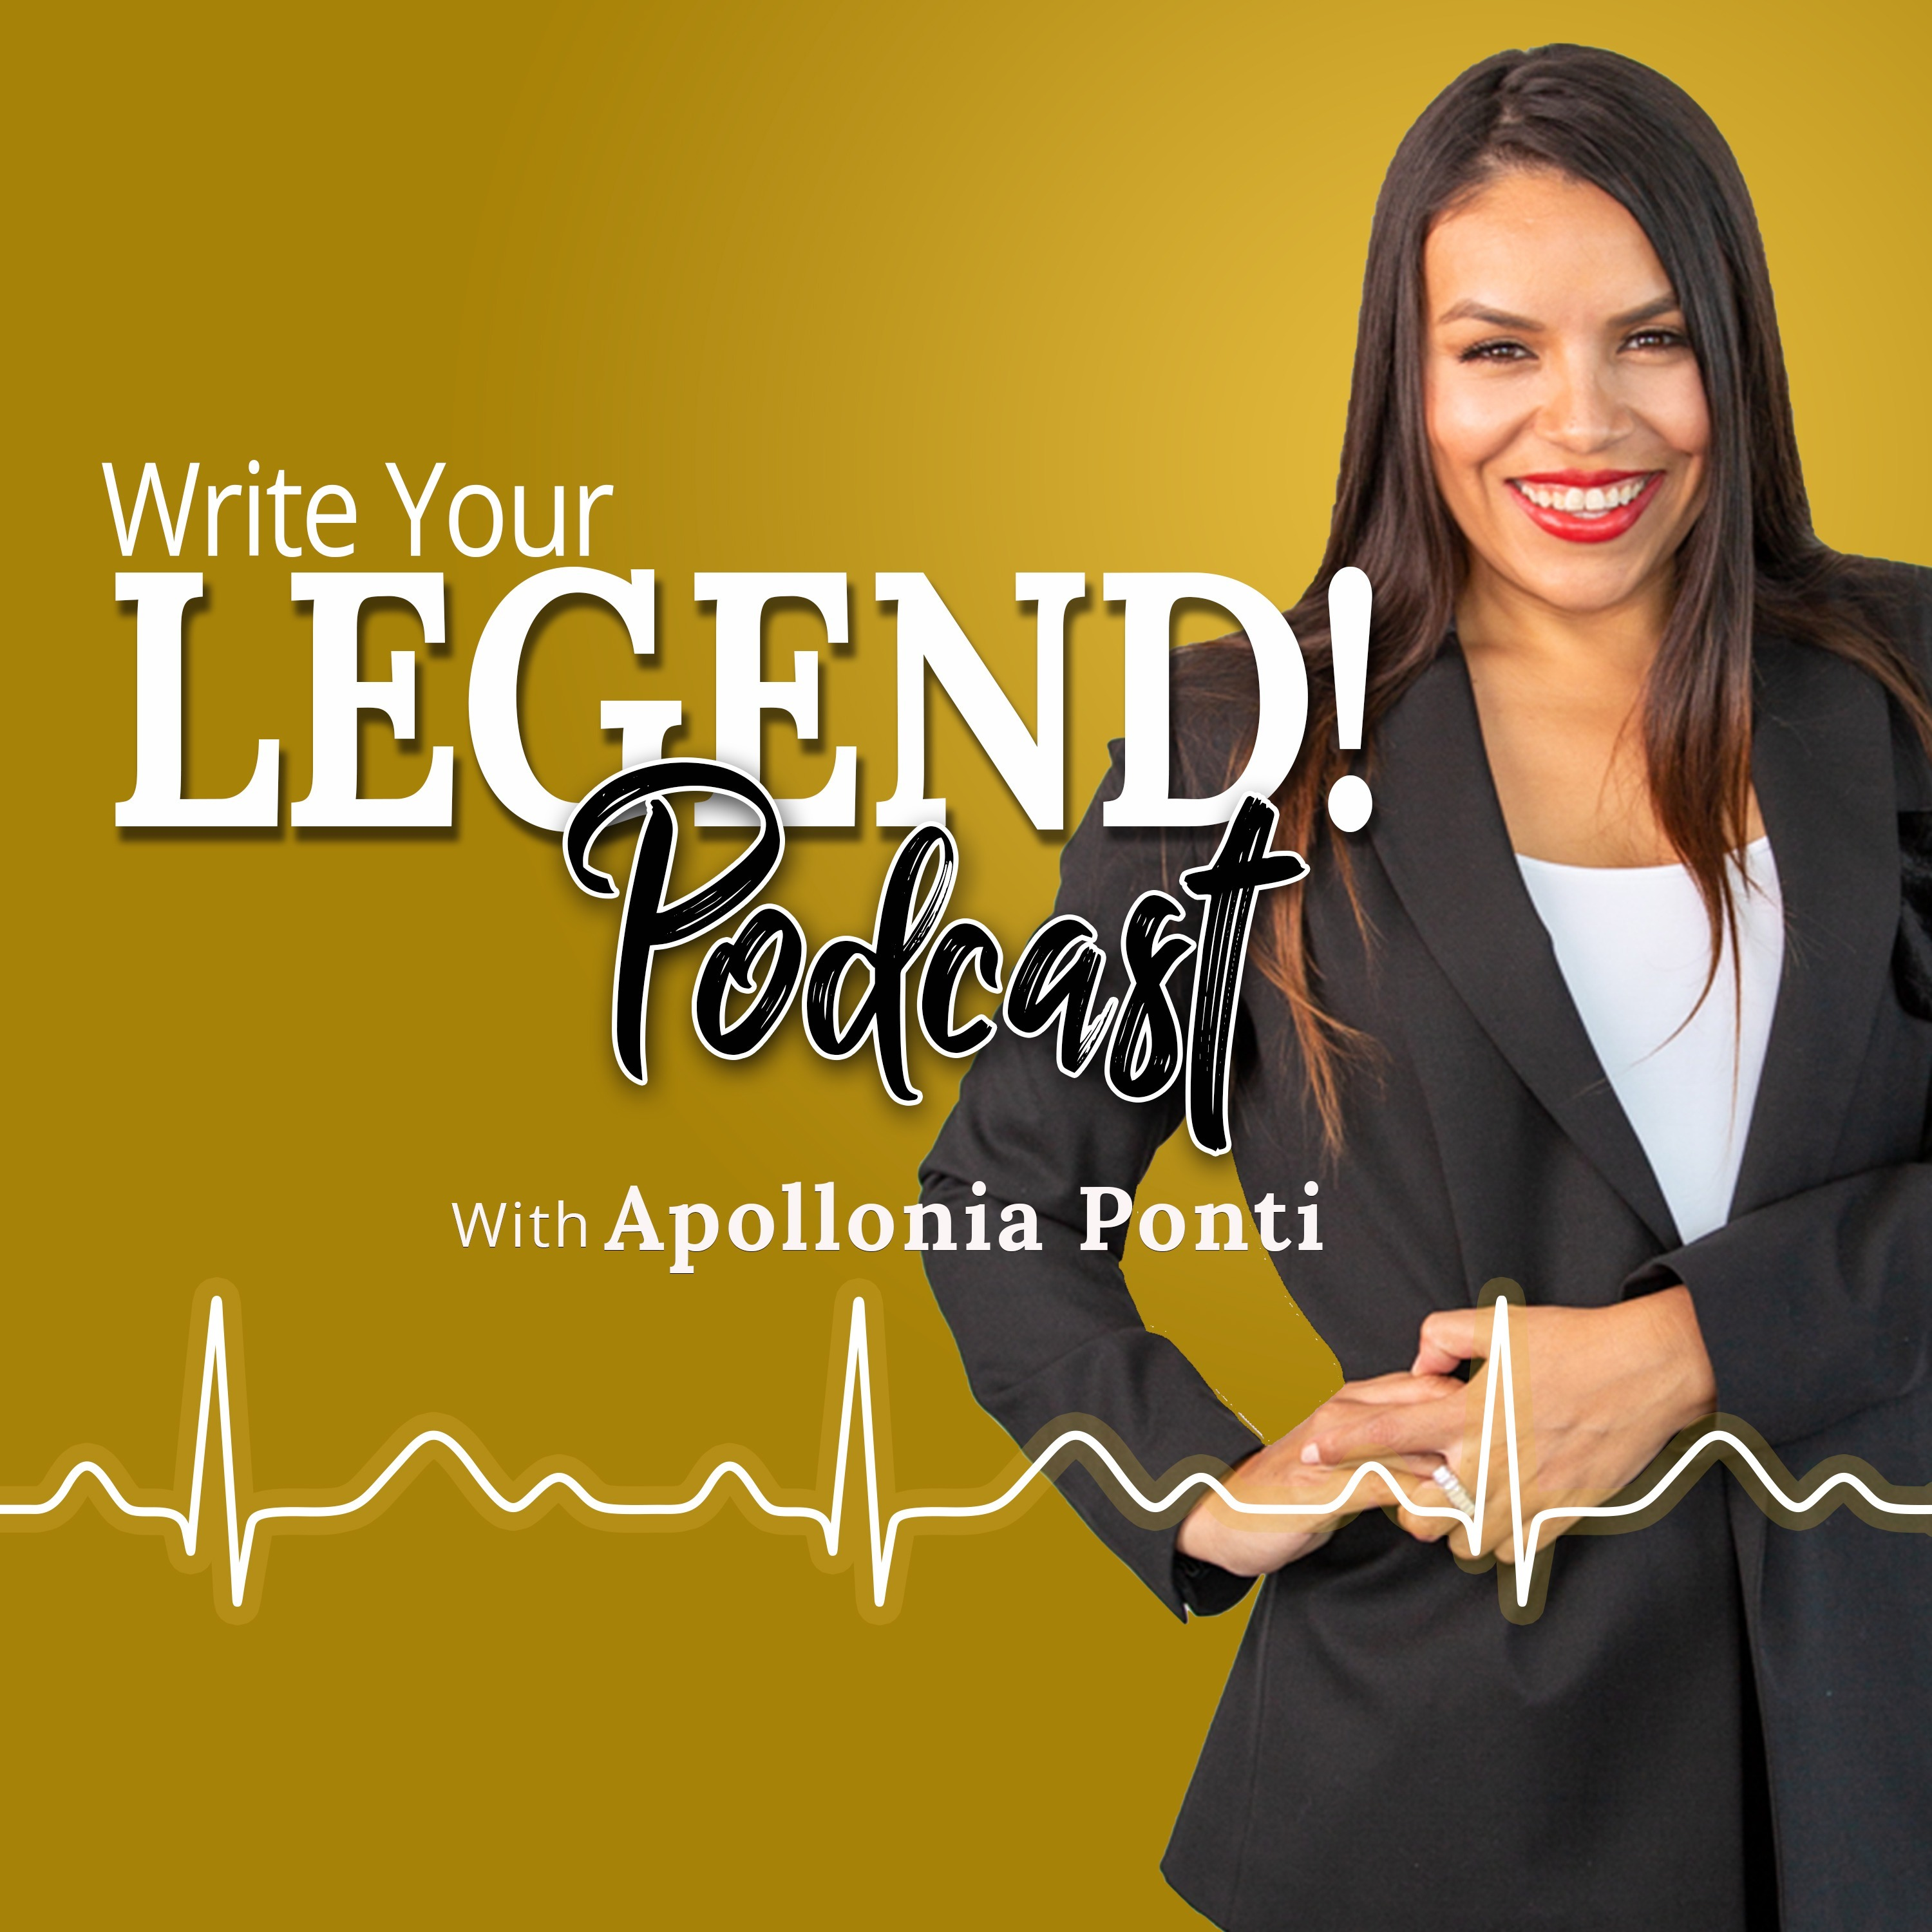 How to Flirt and Build Attraction! 4 Questions to Ask to Connect Instantly | Write Your Legend Podcast with Apollonia Ponti show art